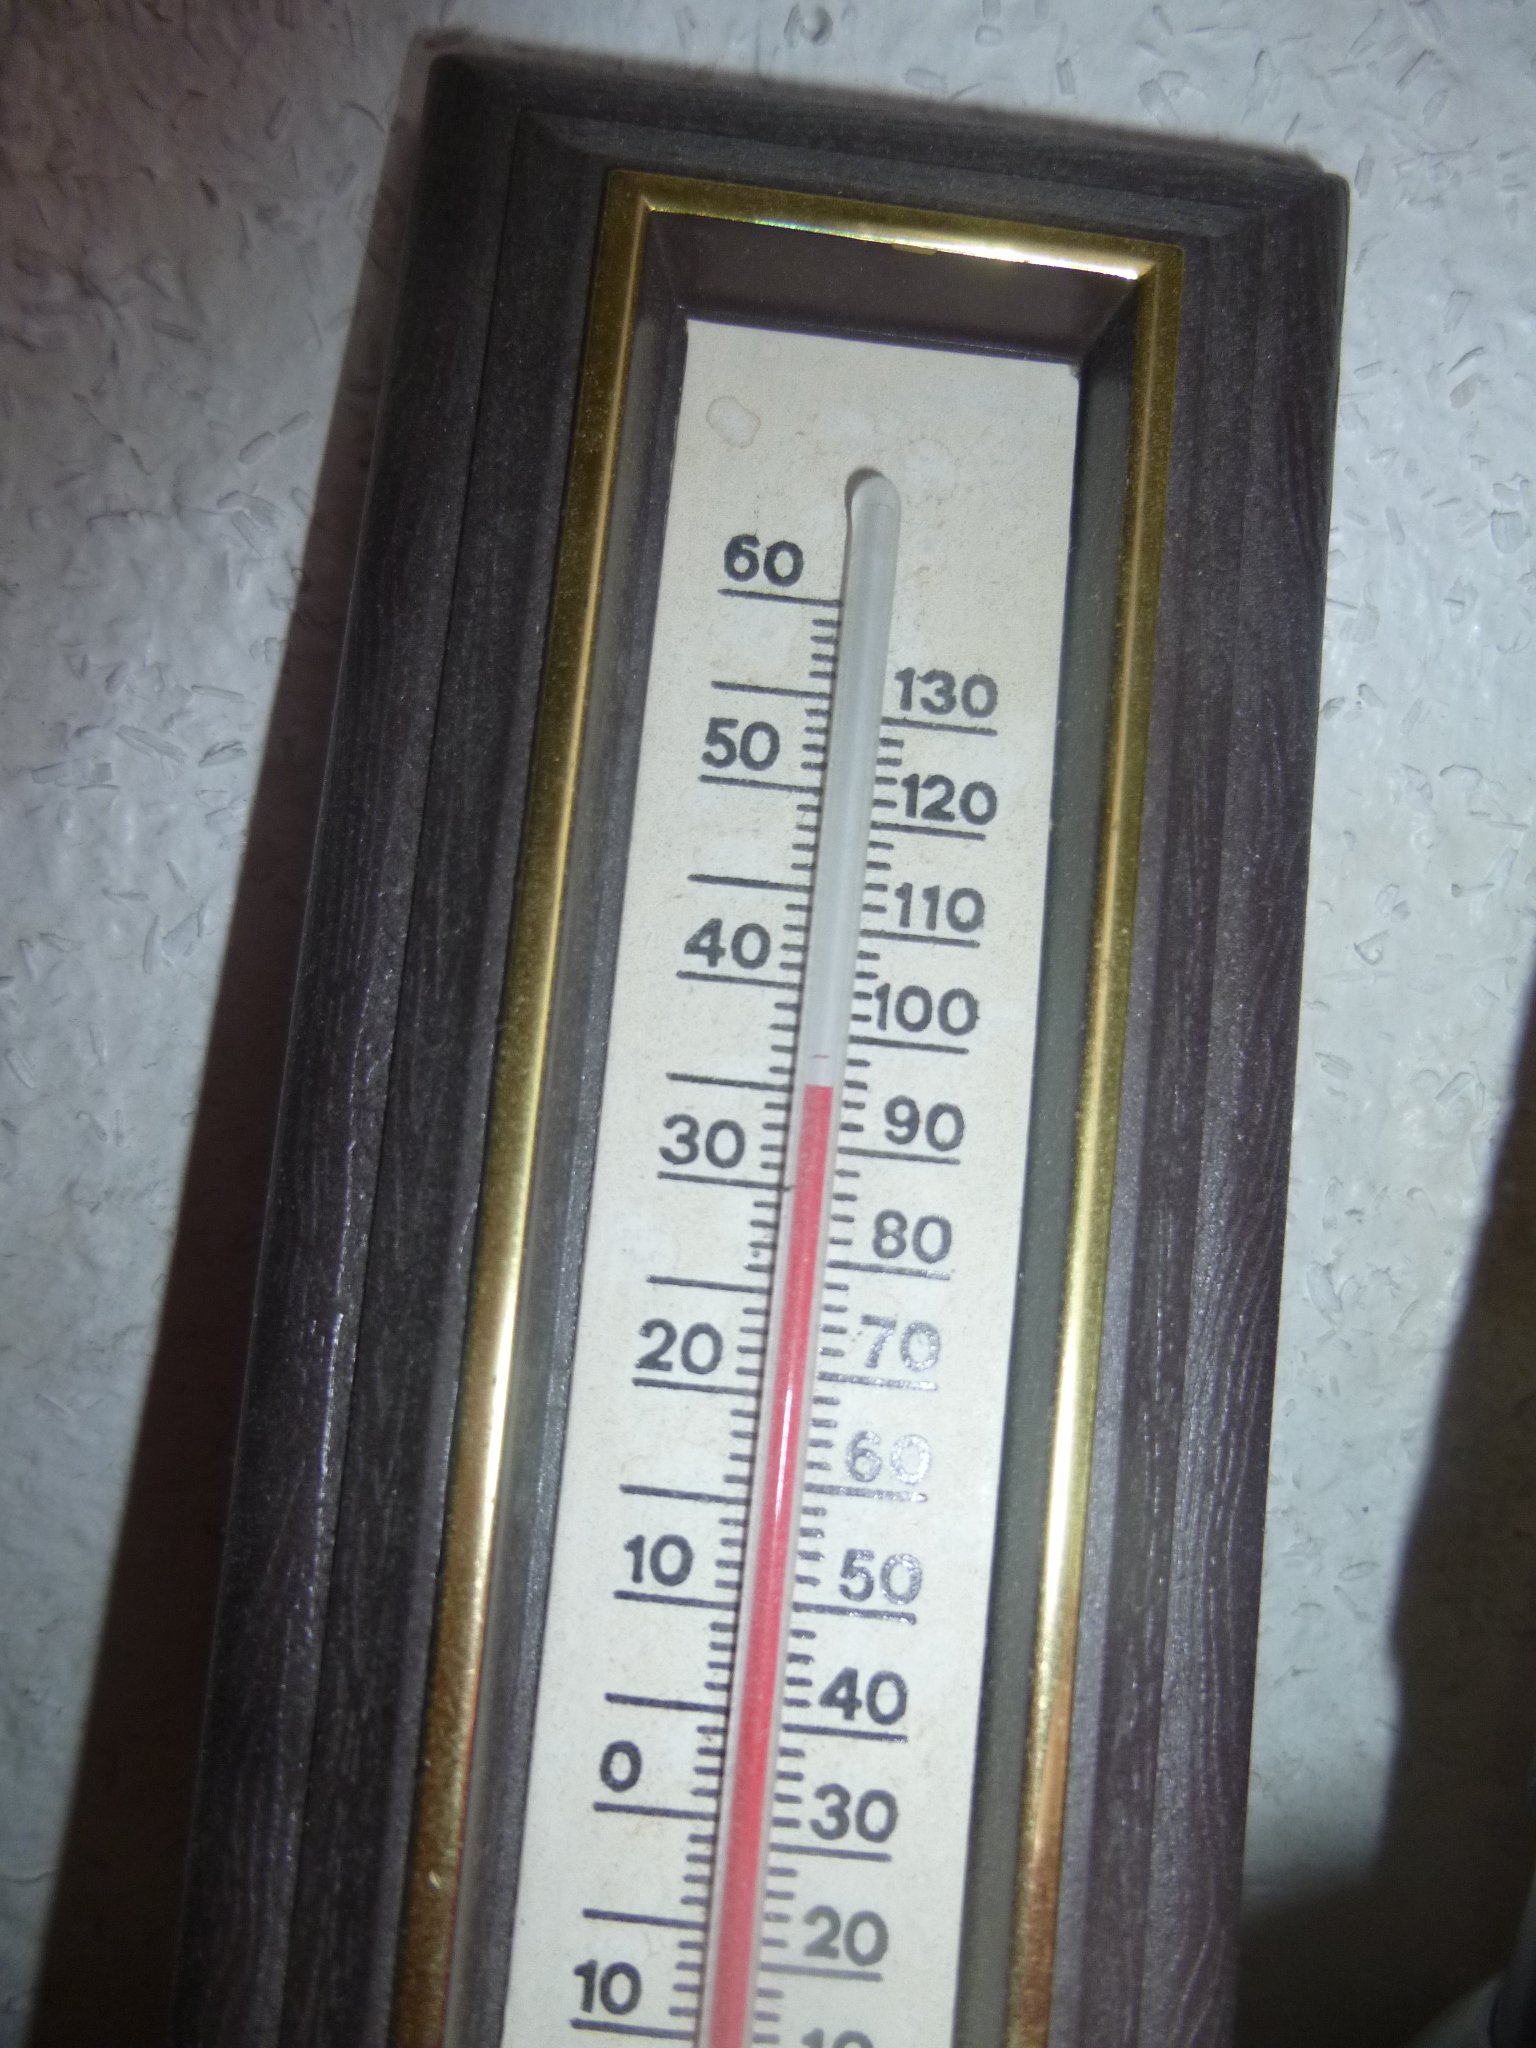 Thermometer - 3.7.2015